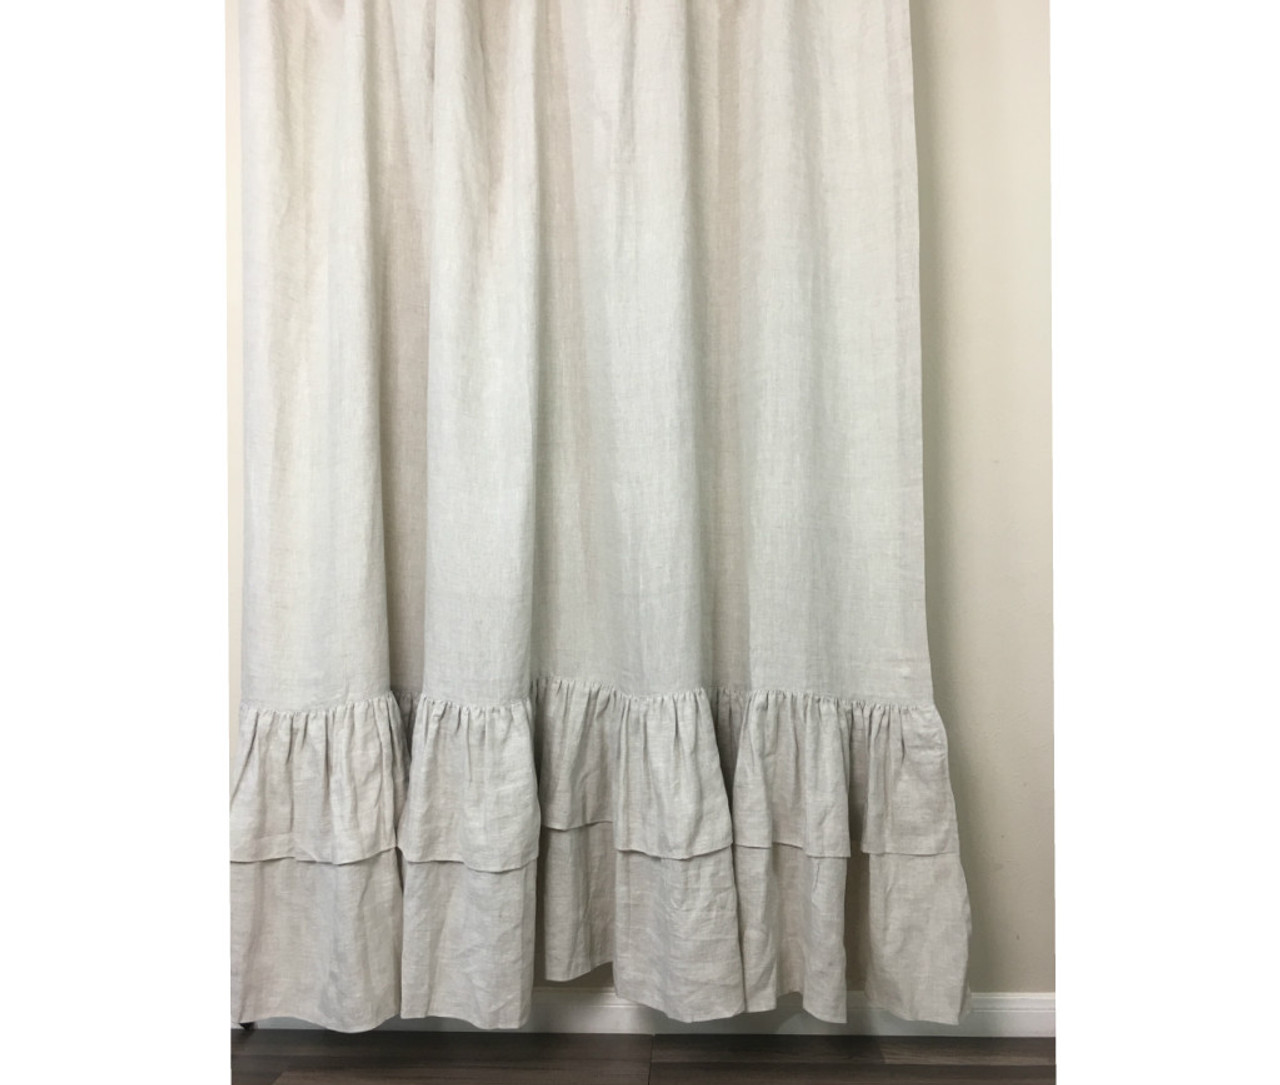 Natural Linen Shower Curtains With Two Tiered Mermaid Long Ruffles Medium Weight Linen